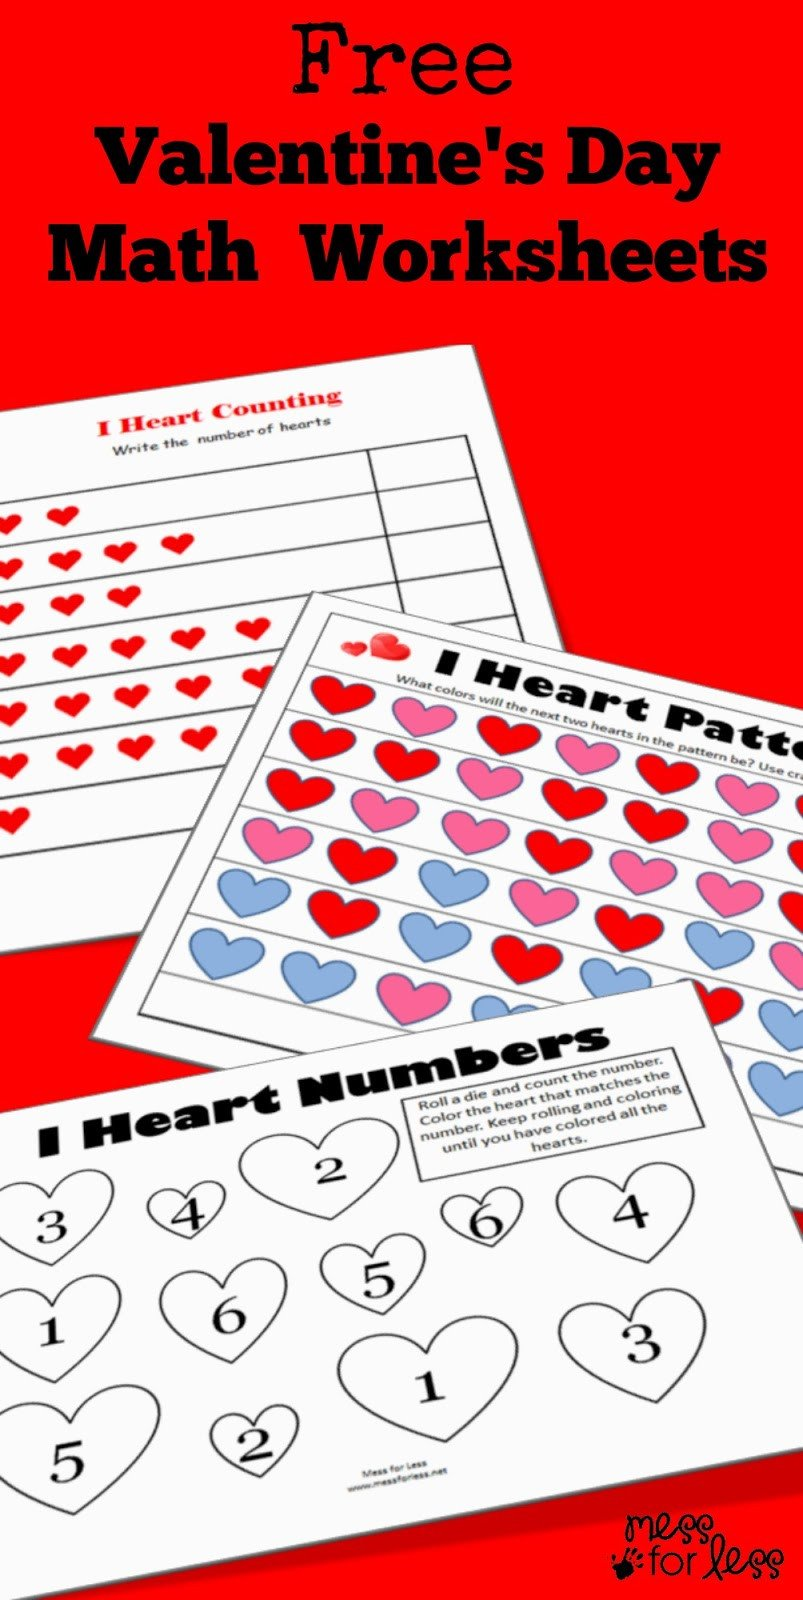 Valentines Day Worksheets for Kindergarten Valentine S Math Kindergarten Worksheets Mess for Less